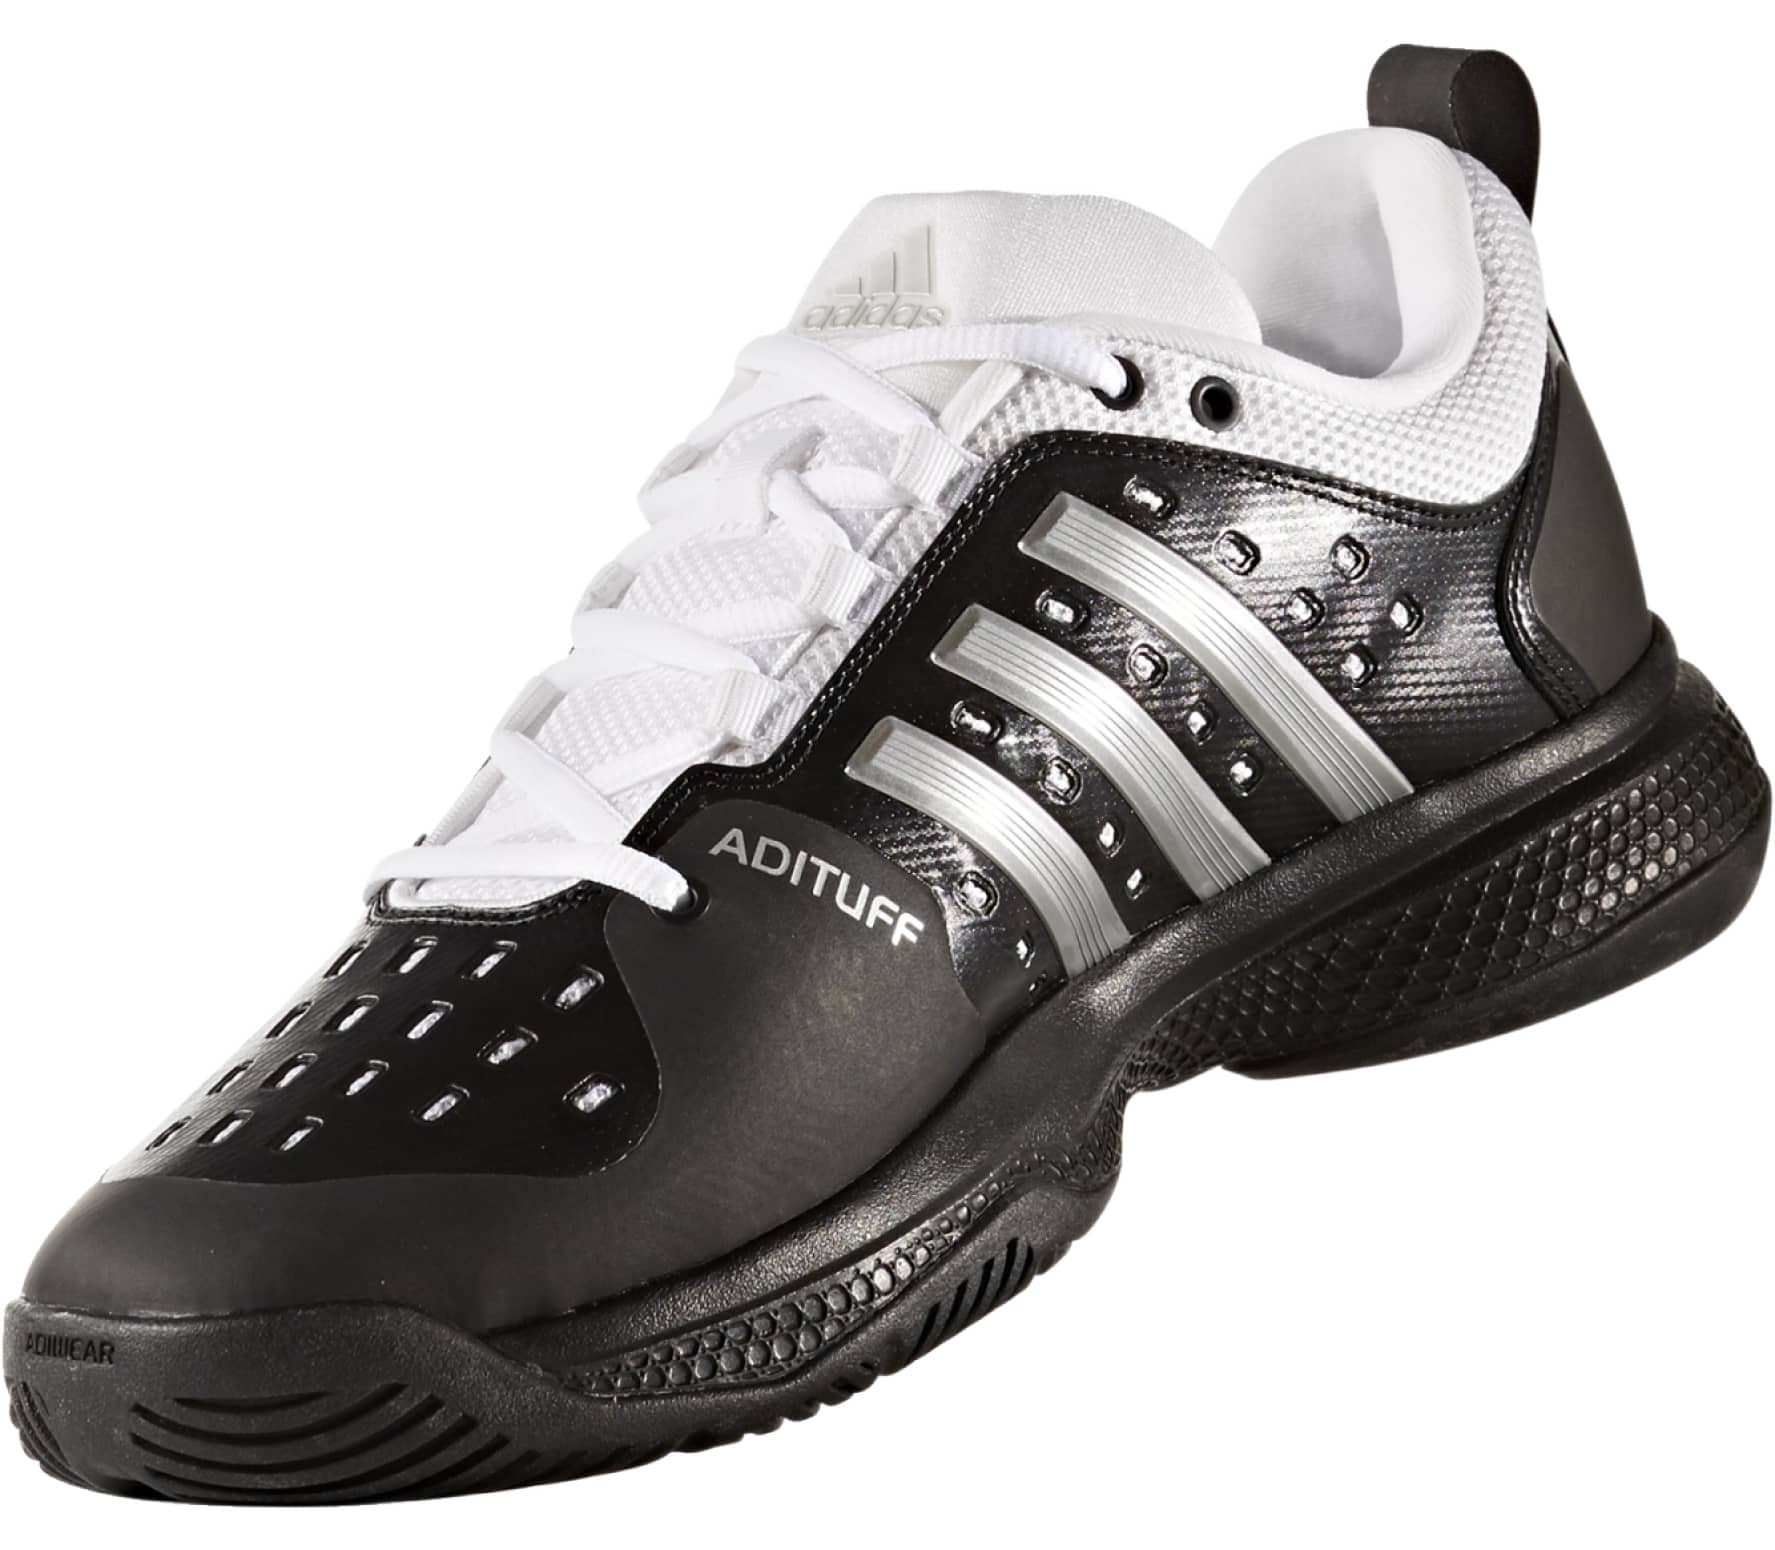 innovative design 1bcc6 3ad82 Adidas - Barricade Classic Bounce Heren Tennis schoen (zwartwit)